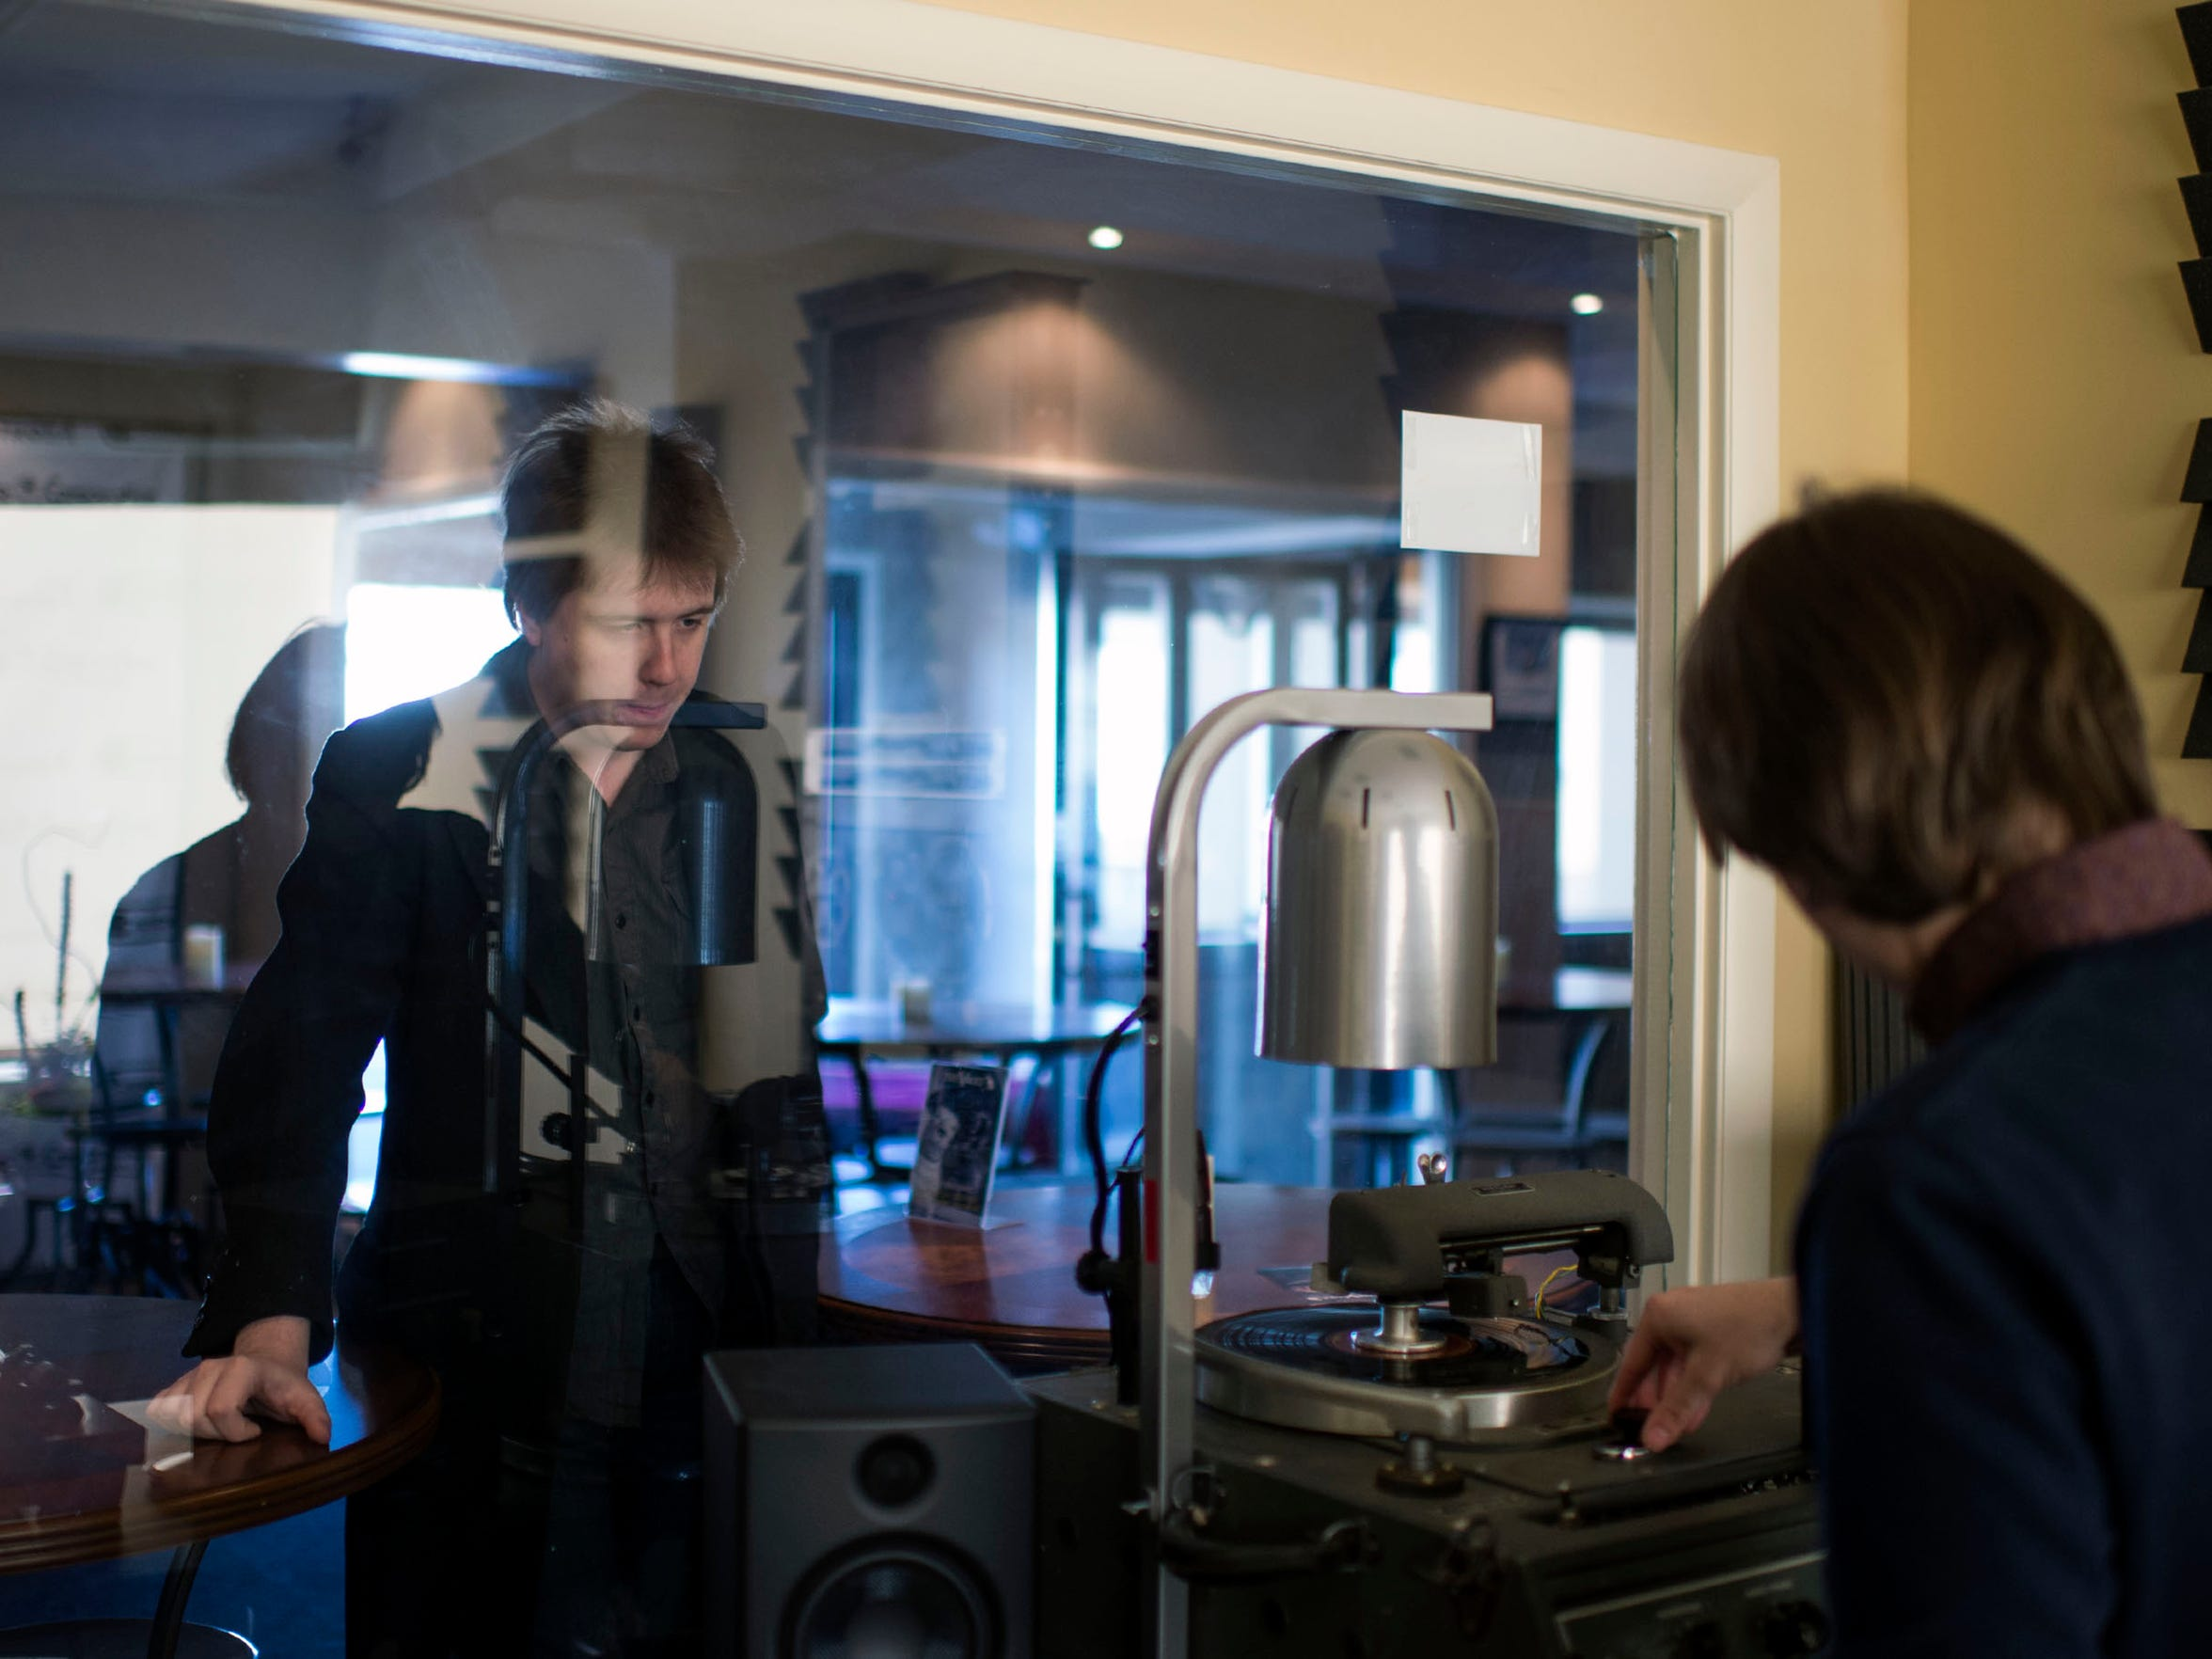 Graham Alexander, left, observes as Zach Harski fires up their record lathe at The Vault in Berlin.